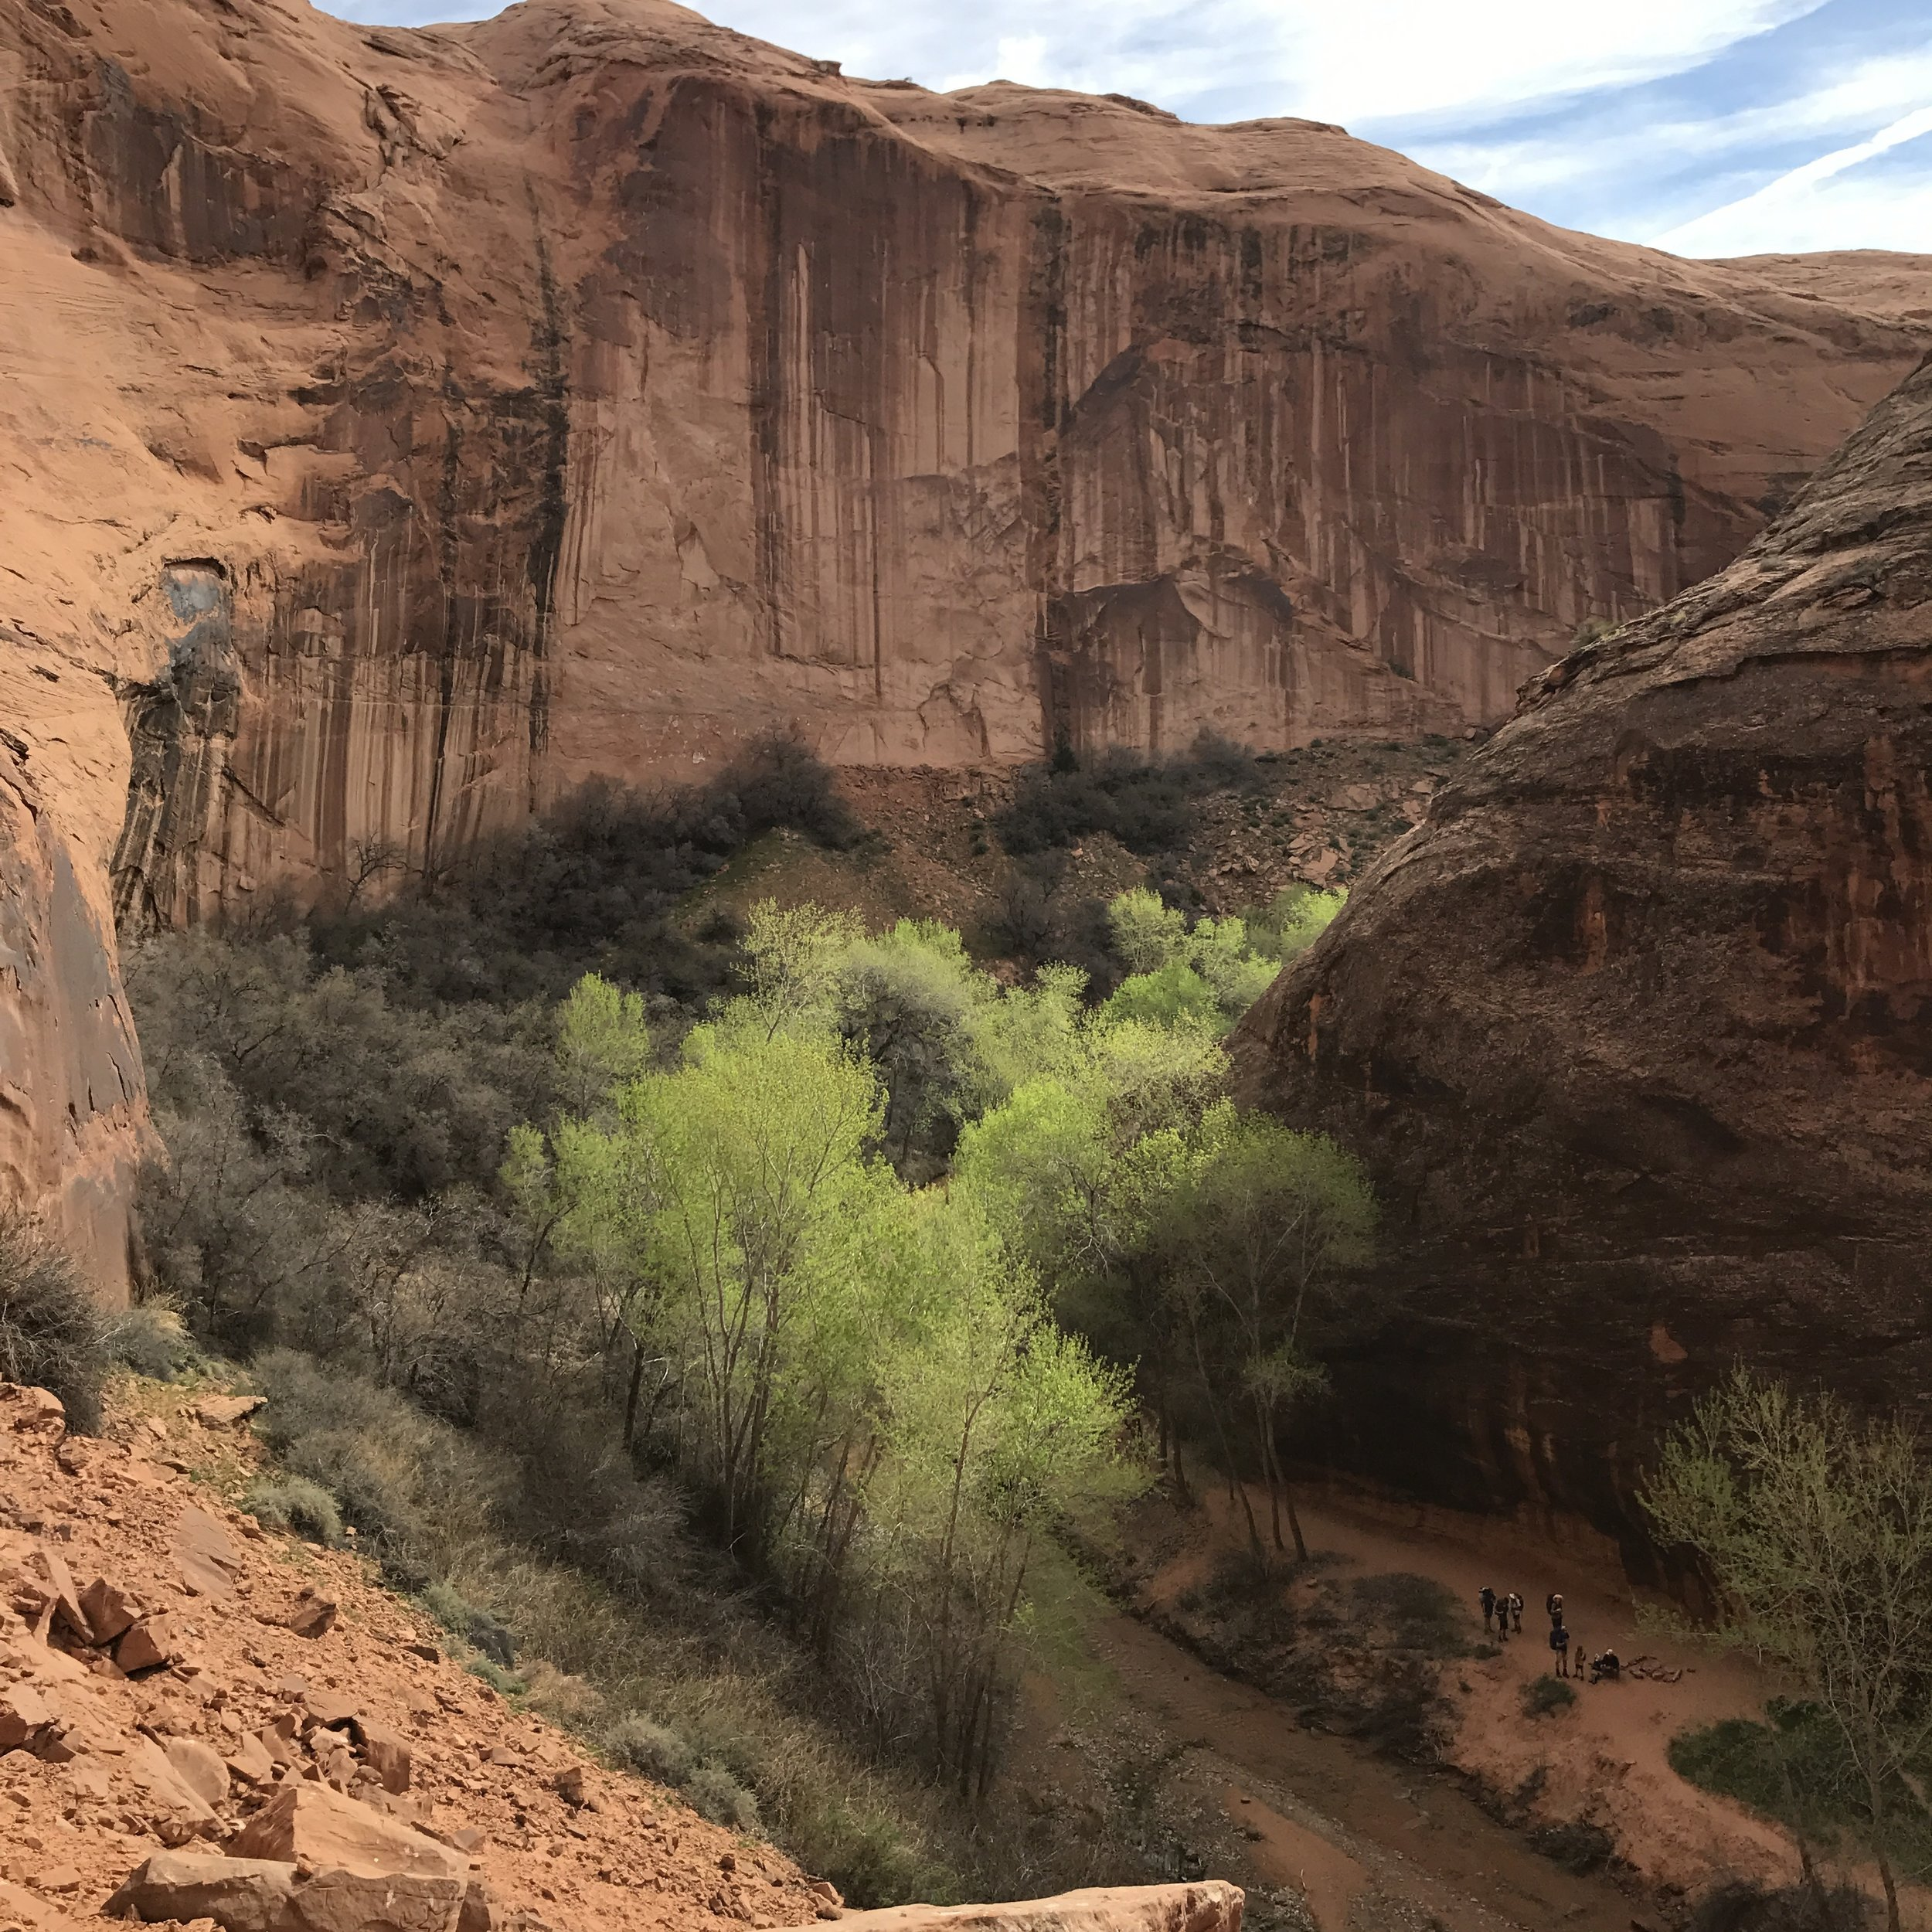 A view looking East into Coyote Gulch from the top of Jacob Hamblin Arch